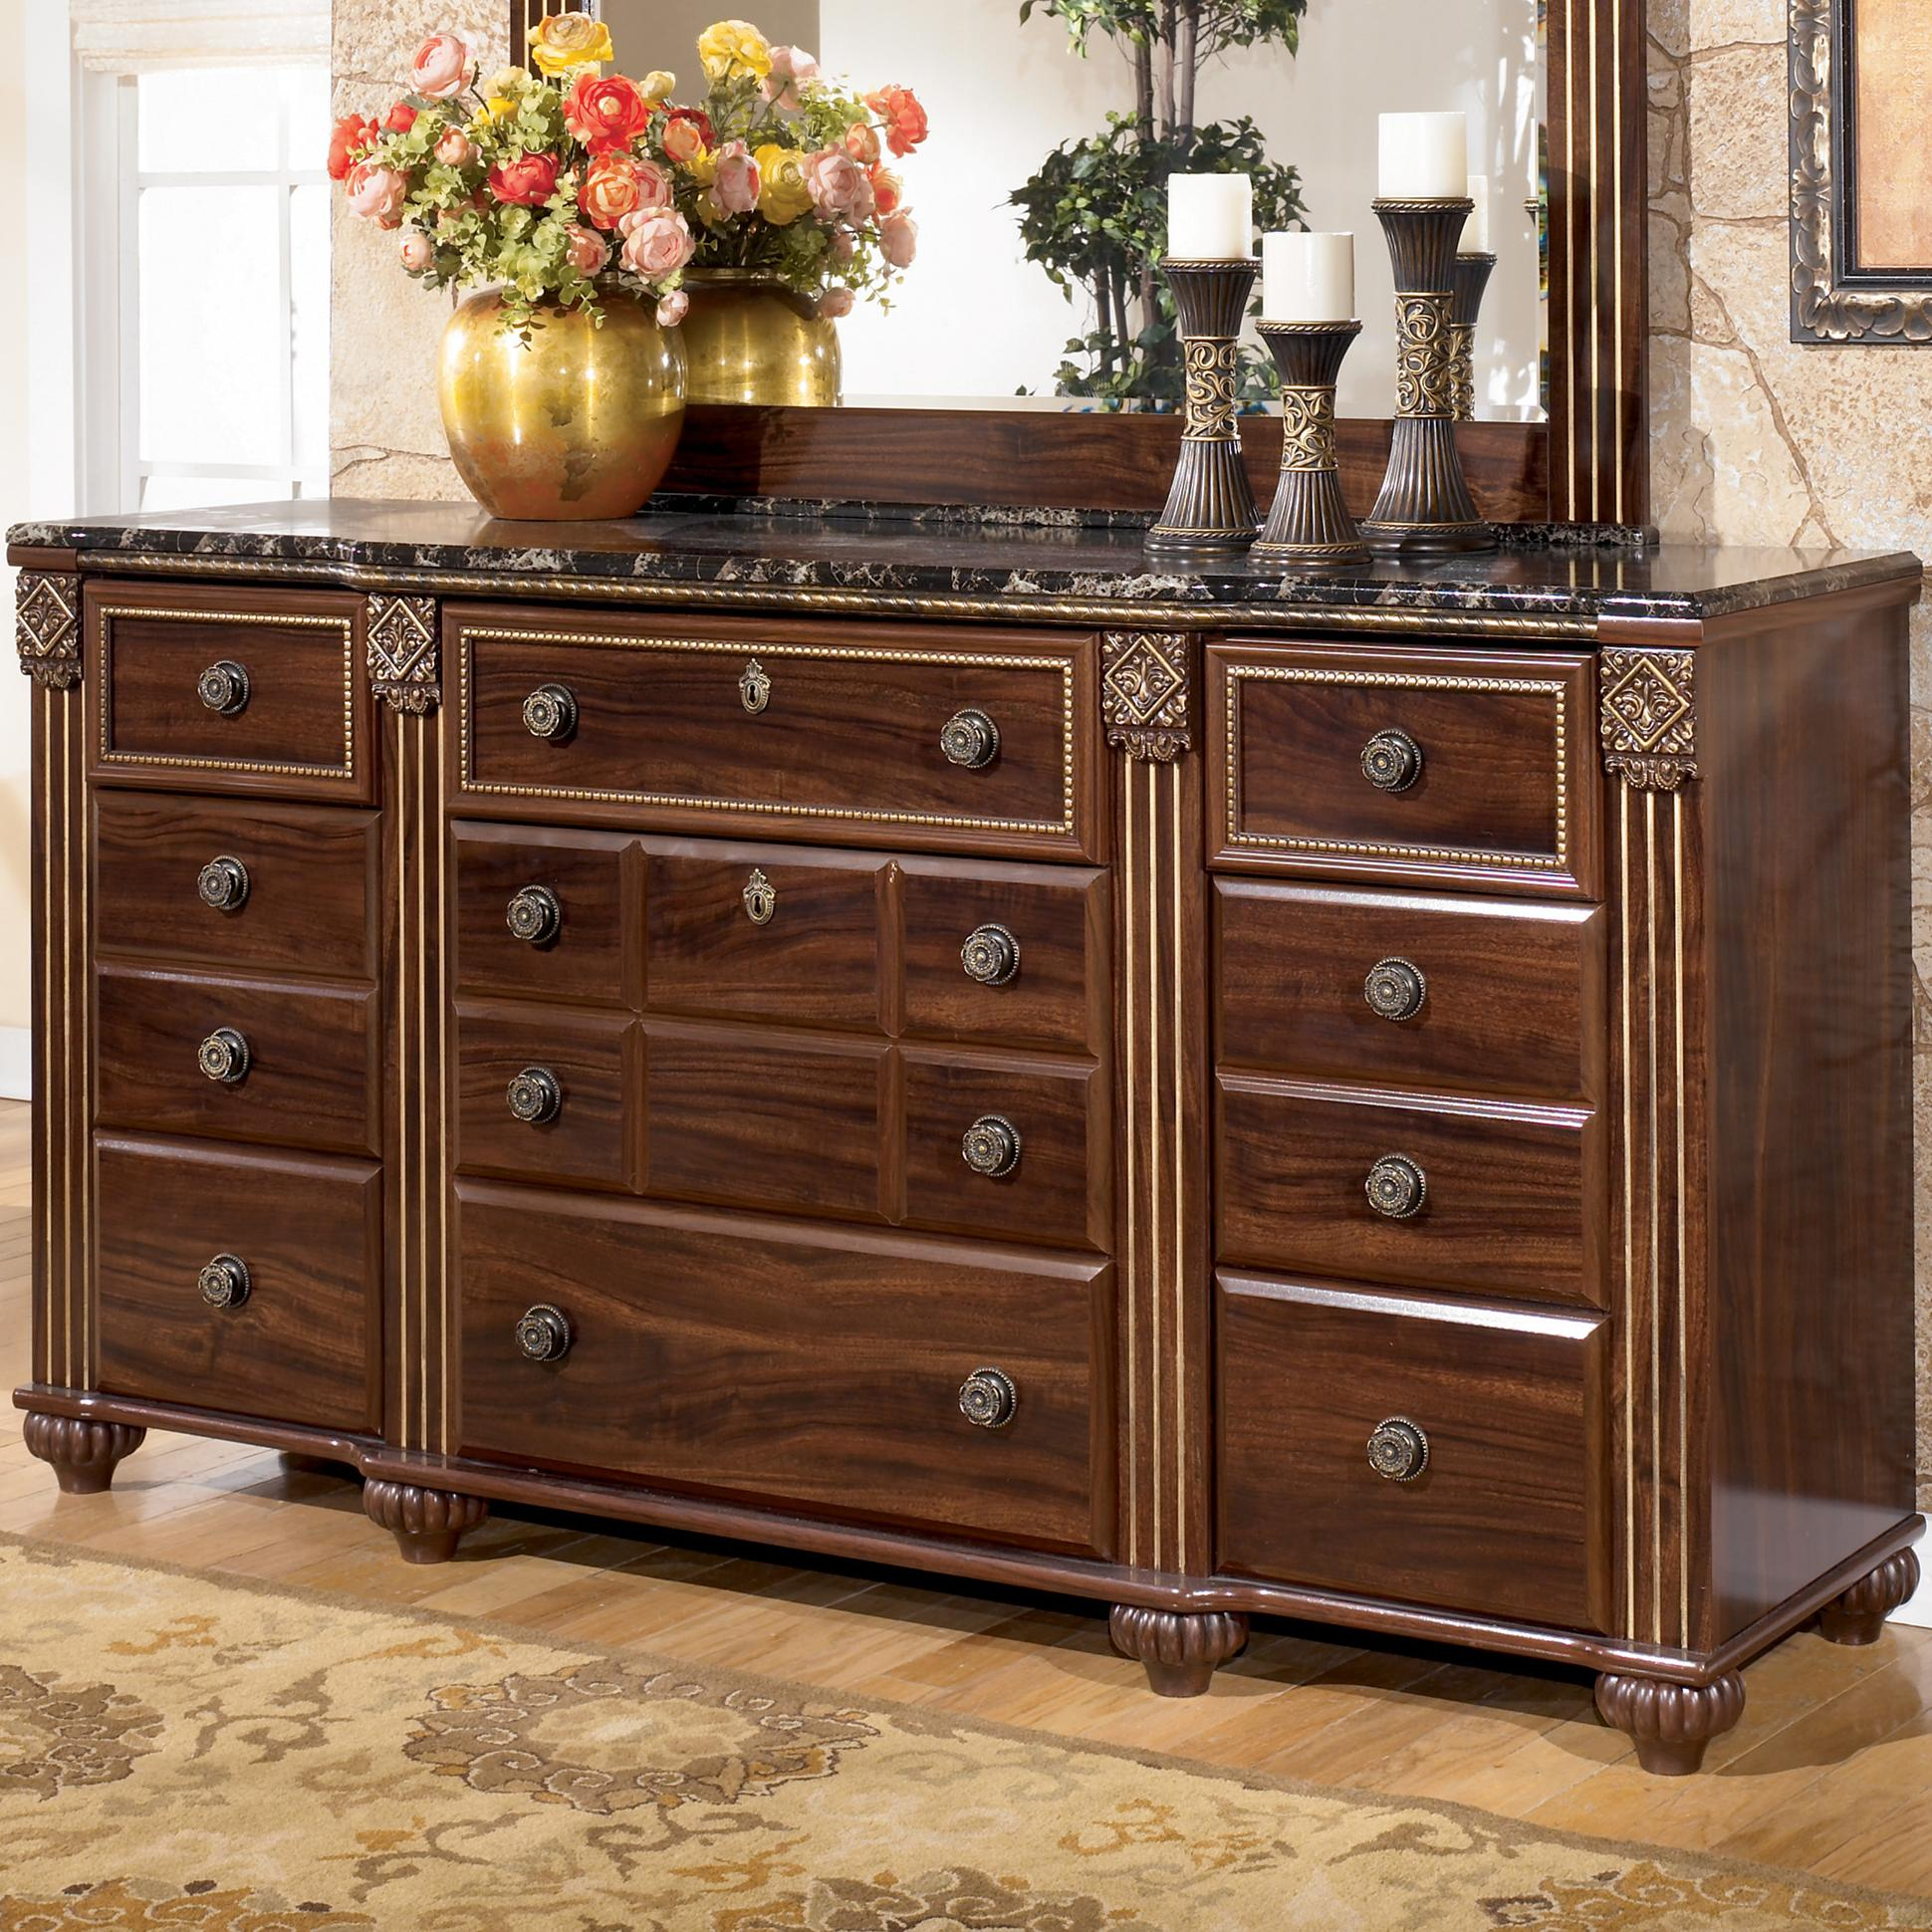 Signature Design by Ashley Gabriela 9 Drawer Dresser - Item Number: B347-31